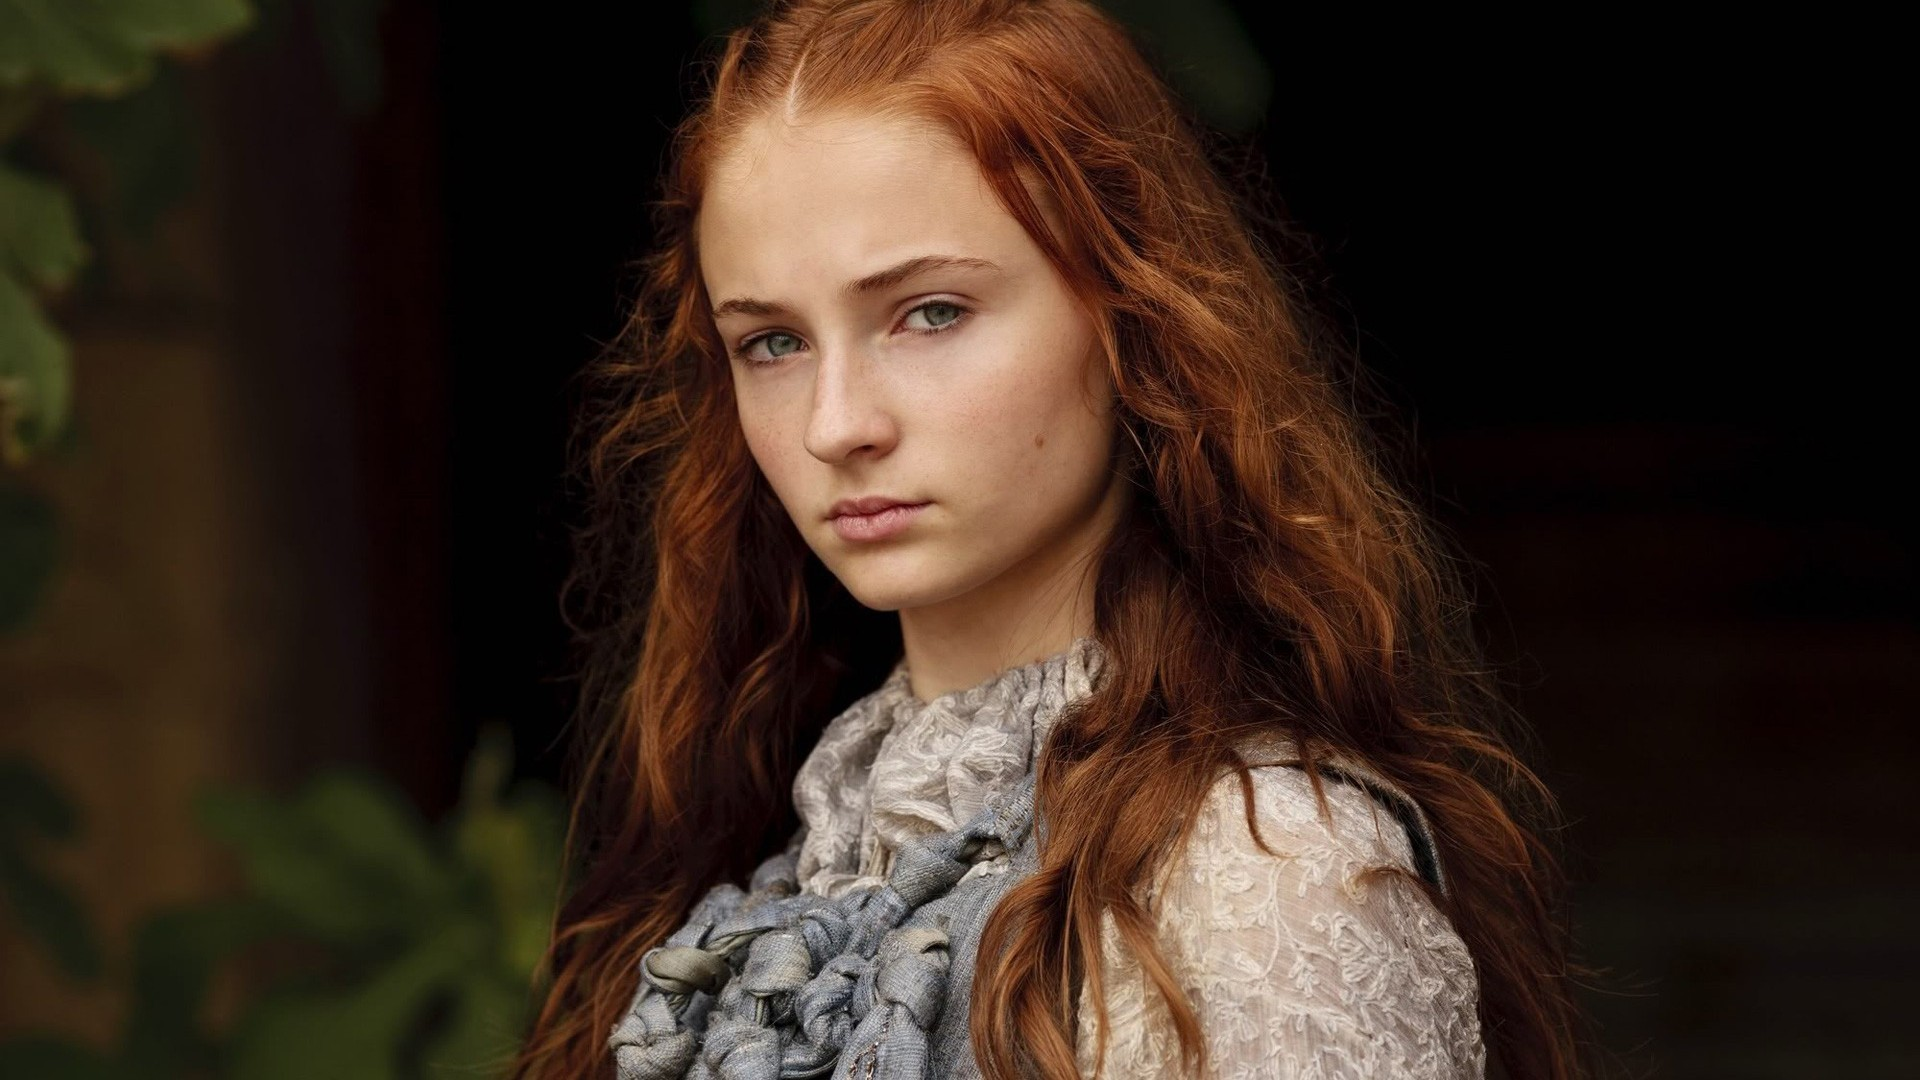 'Game of Thrones' Sophie Turner Says Sansa 'Commands the Respect She Deserves' in Season Six